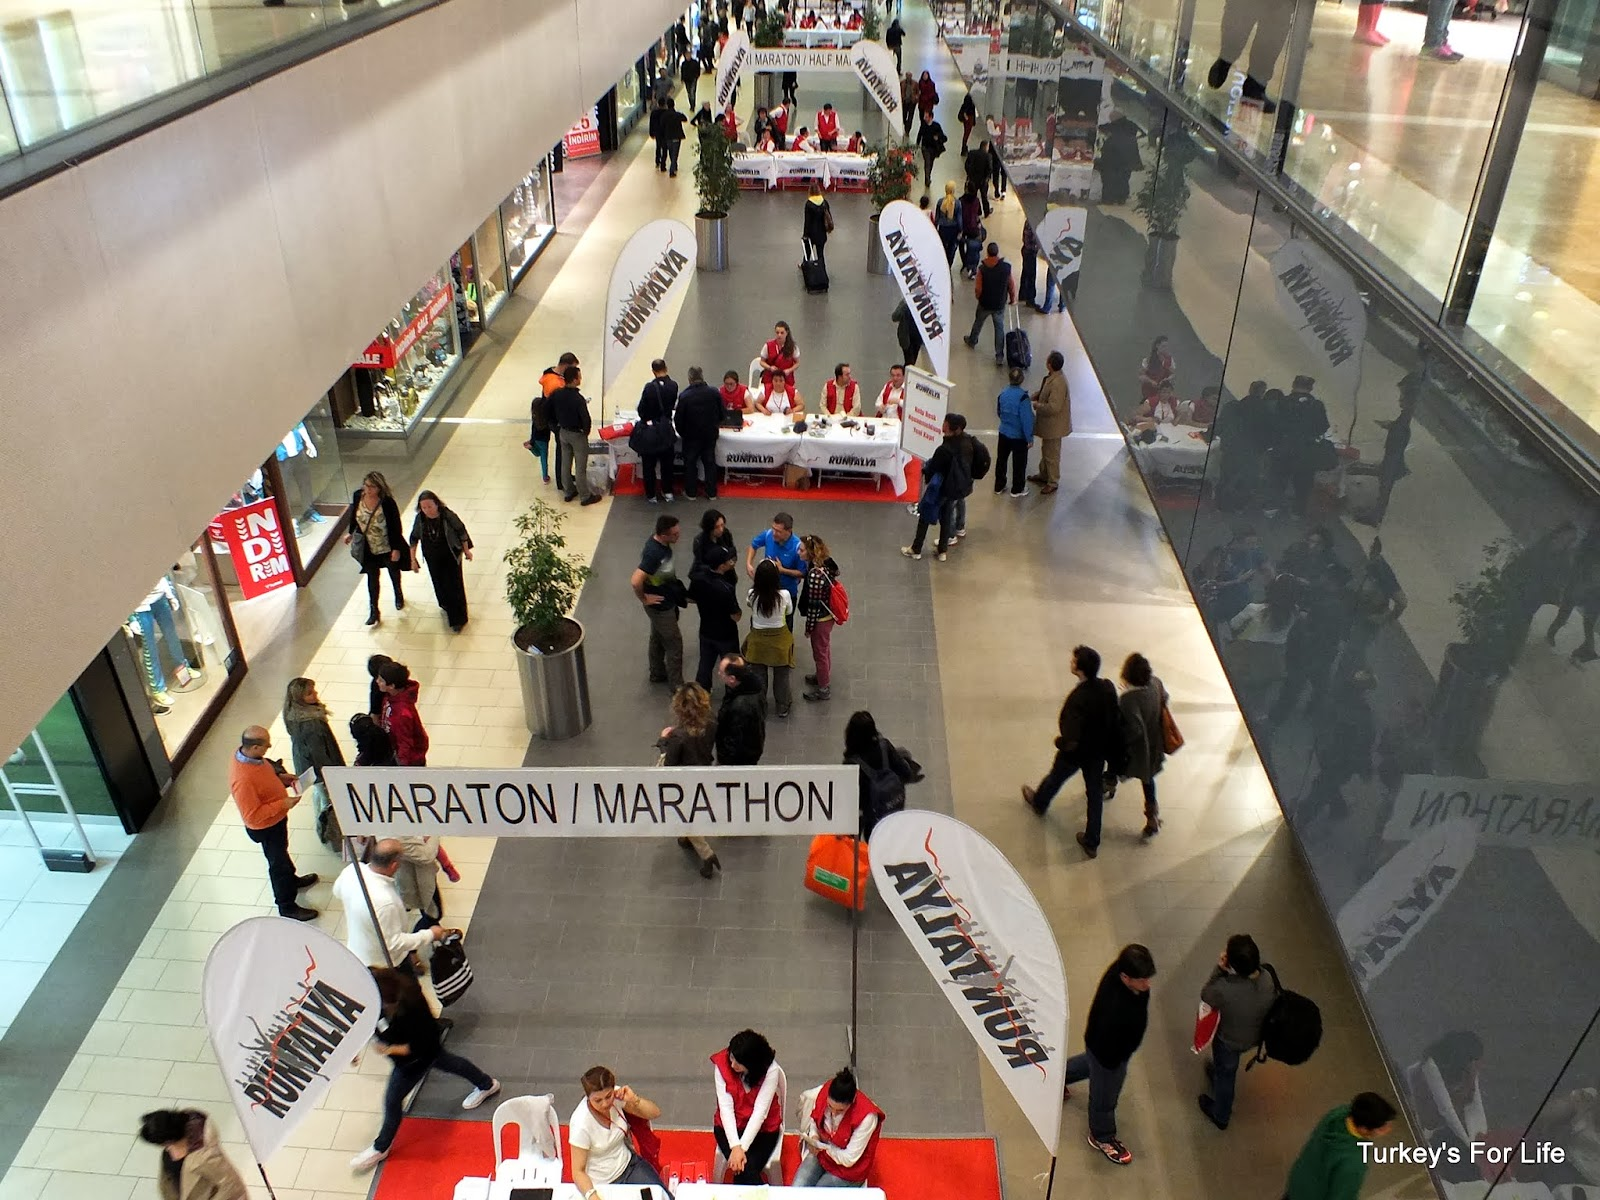 Runtalya 2014 Registration At Terra City, Antalya